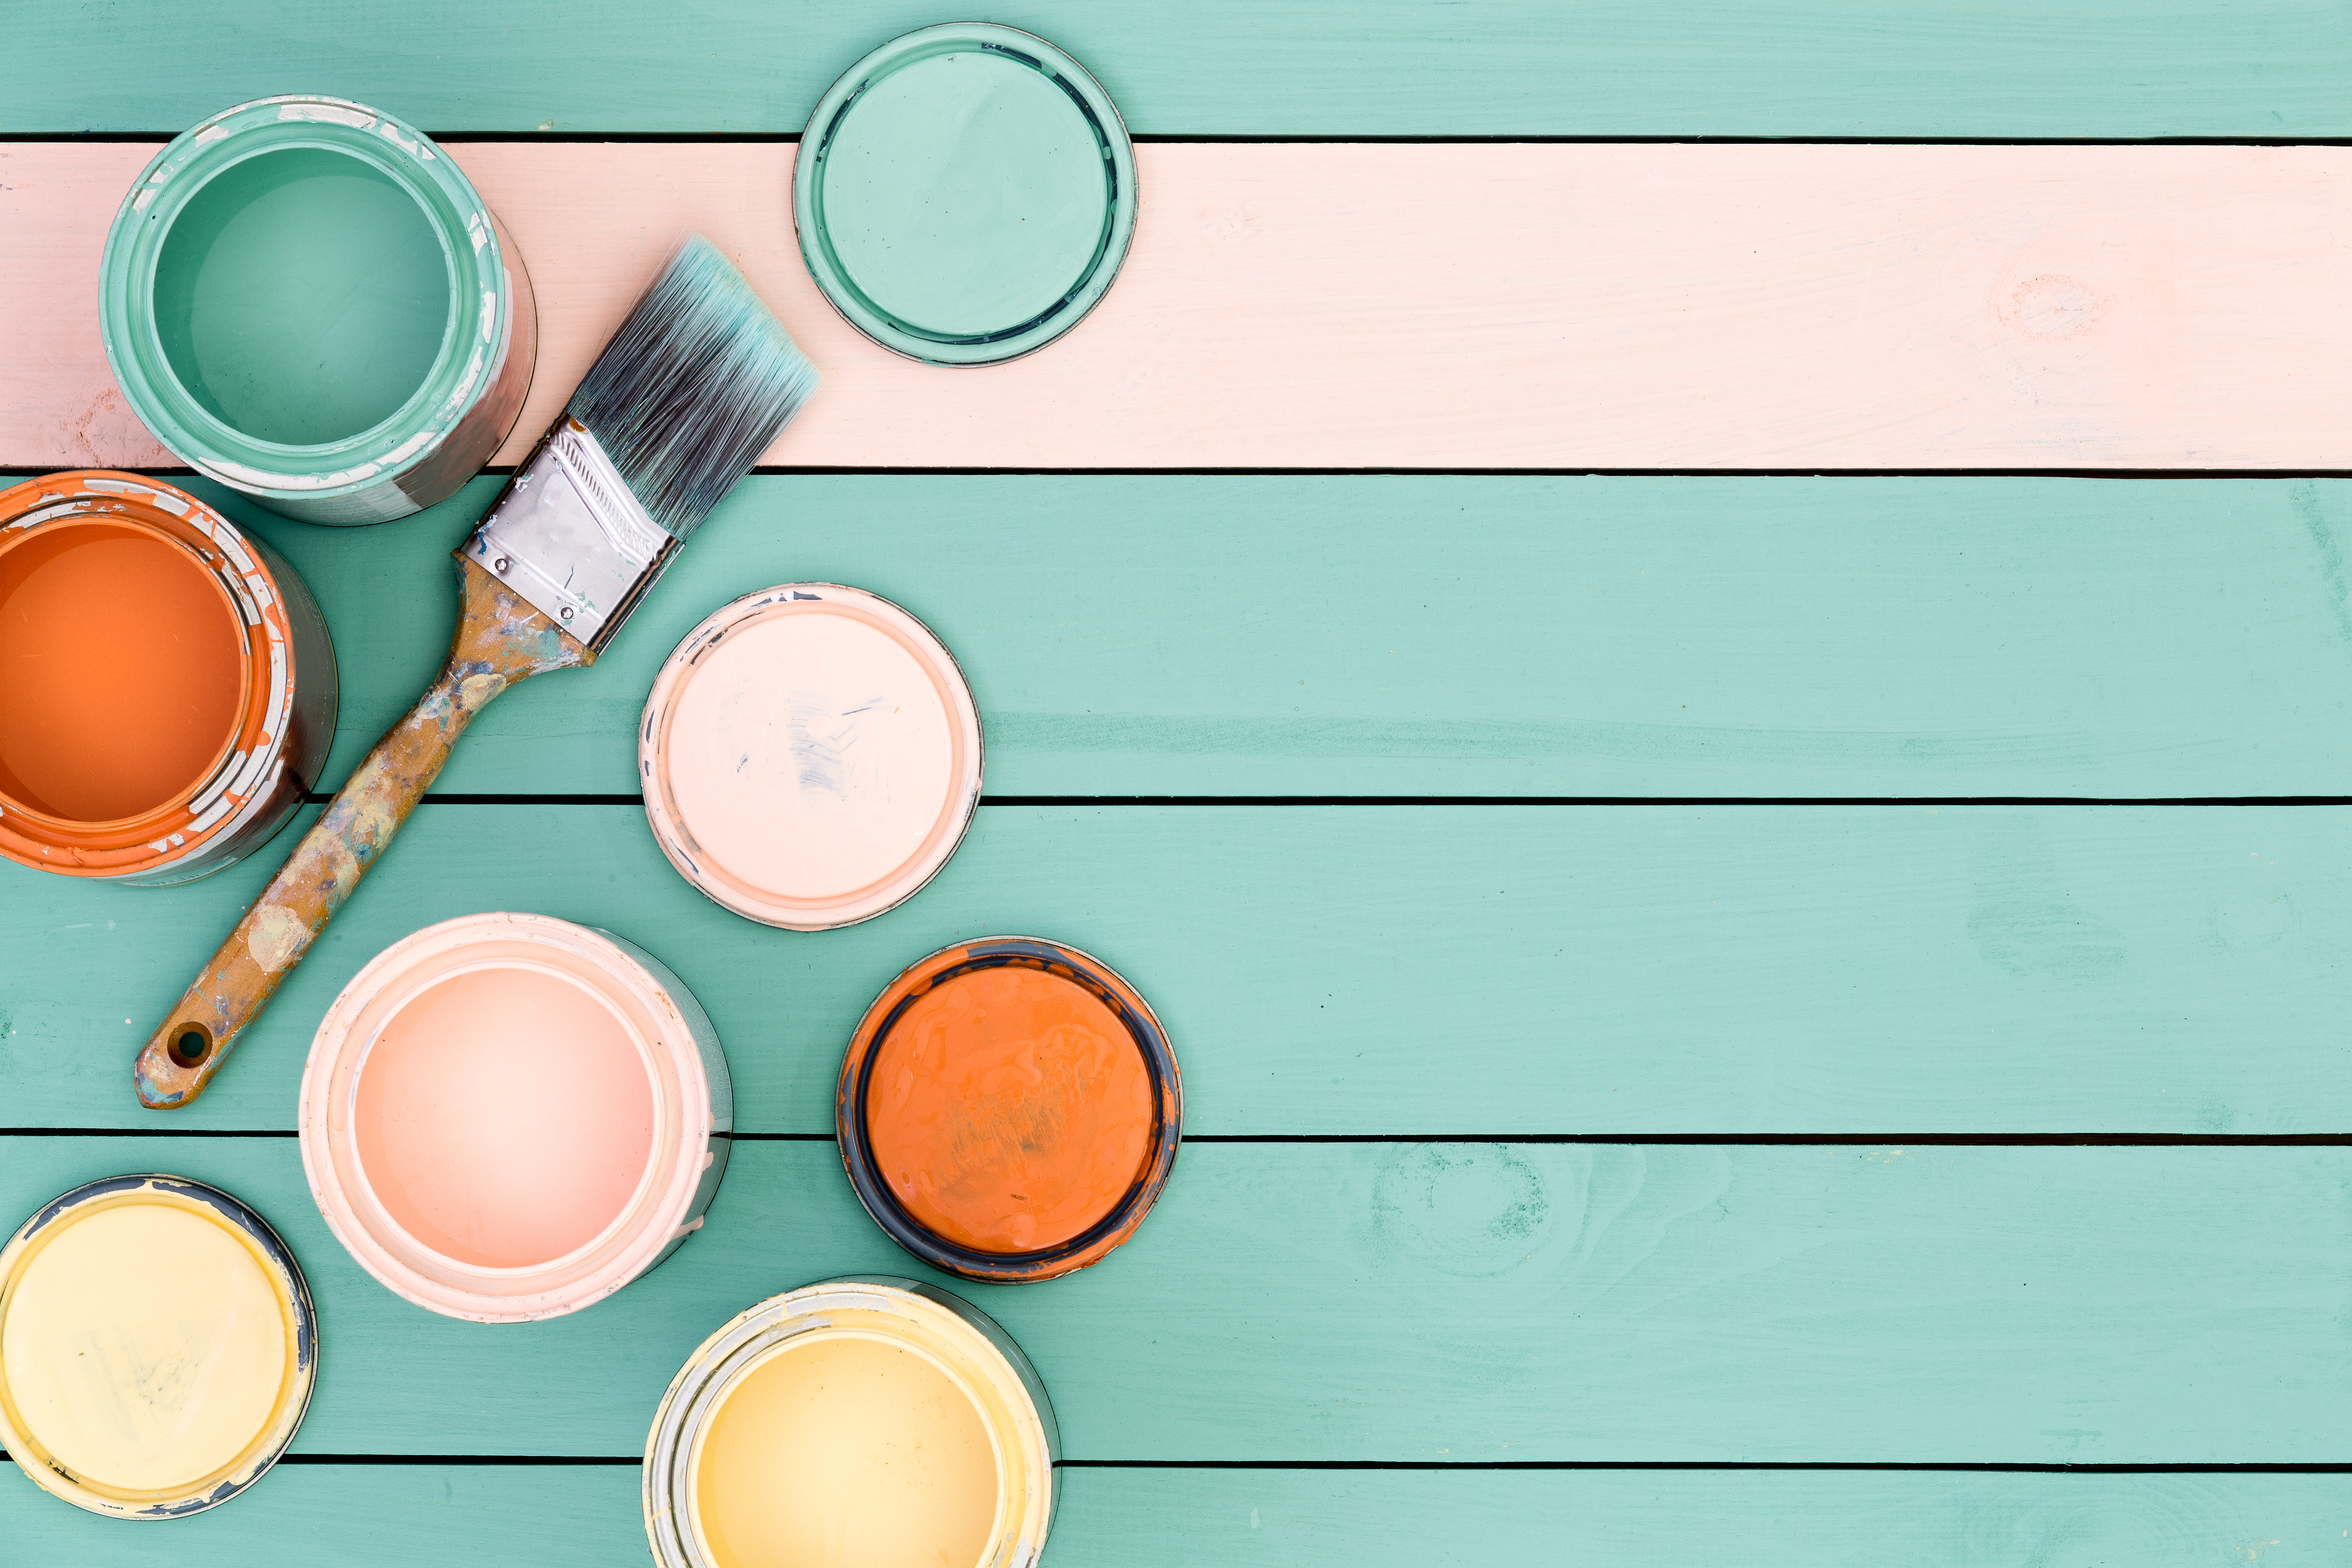 Why You Should Add Baking Soda to Latex Paint